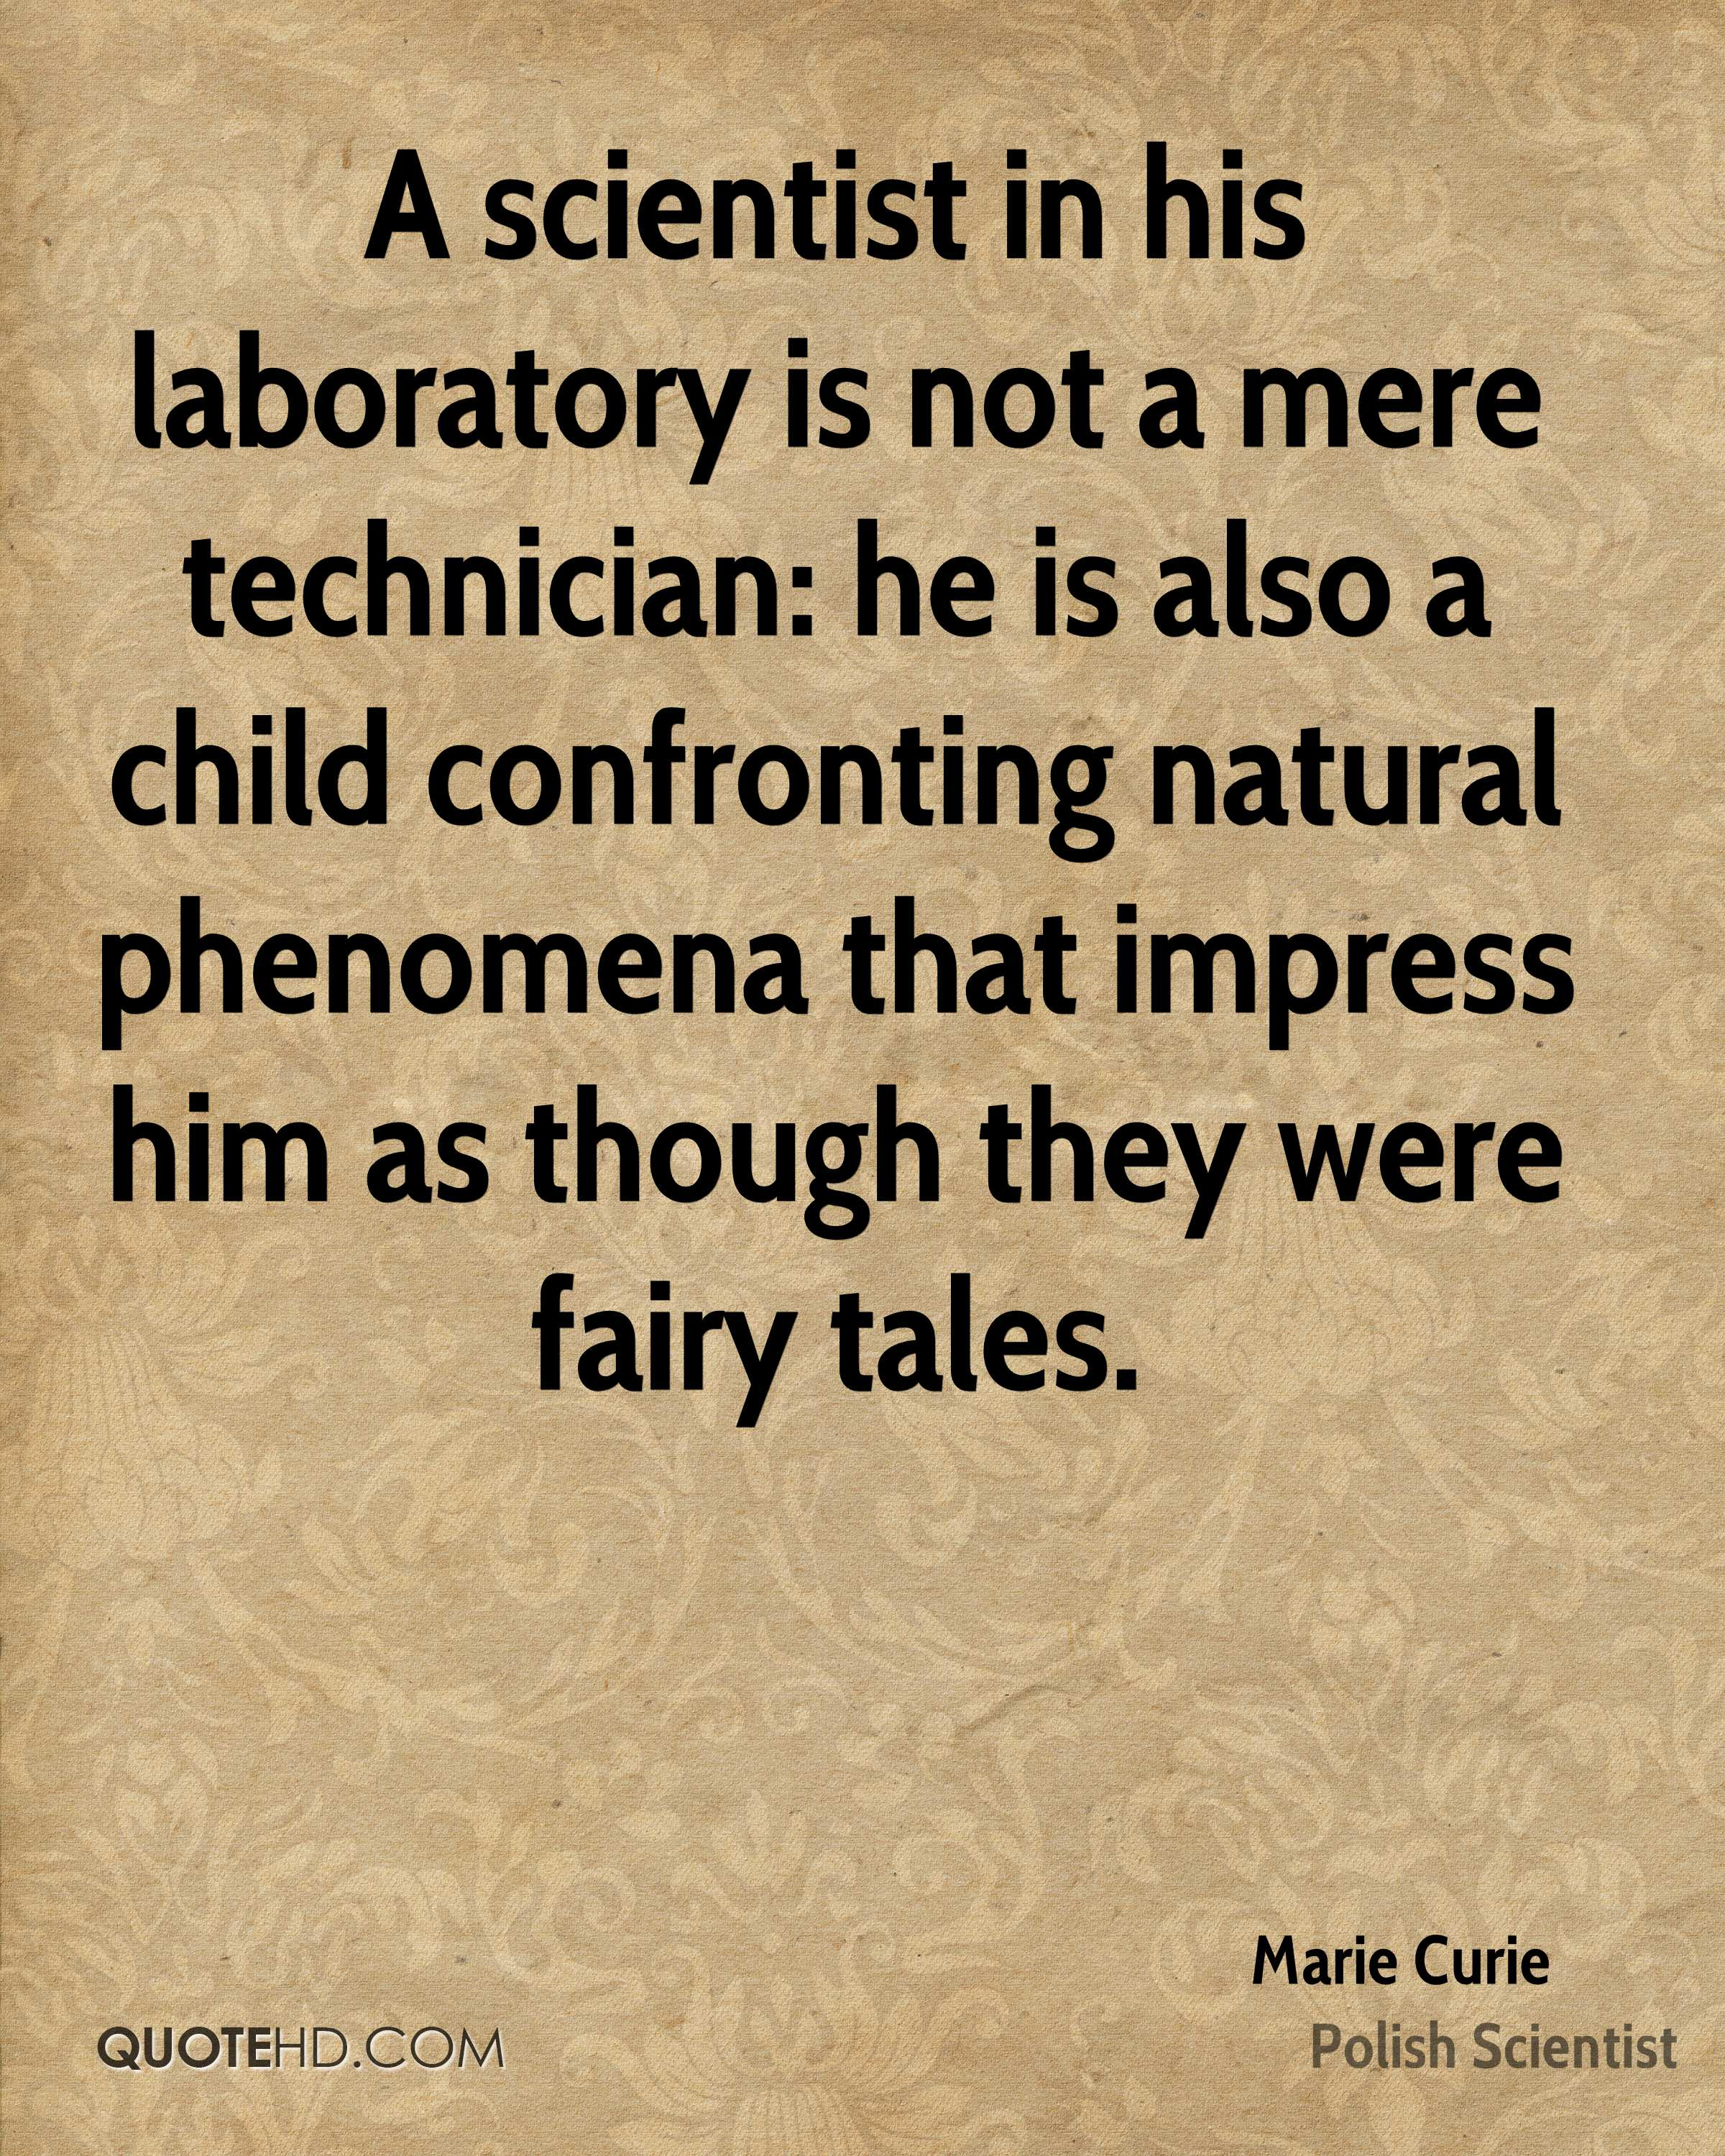 A scientist in his laboratory is not a mere technician: he is also a child confronting natural phenomena that impress him as though they were fairy tales.